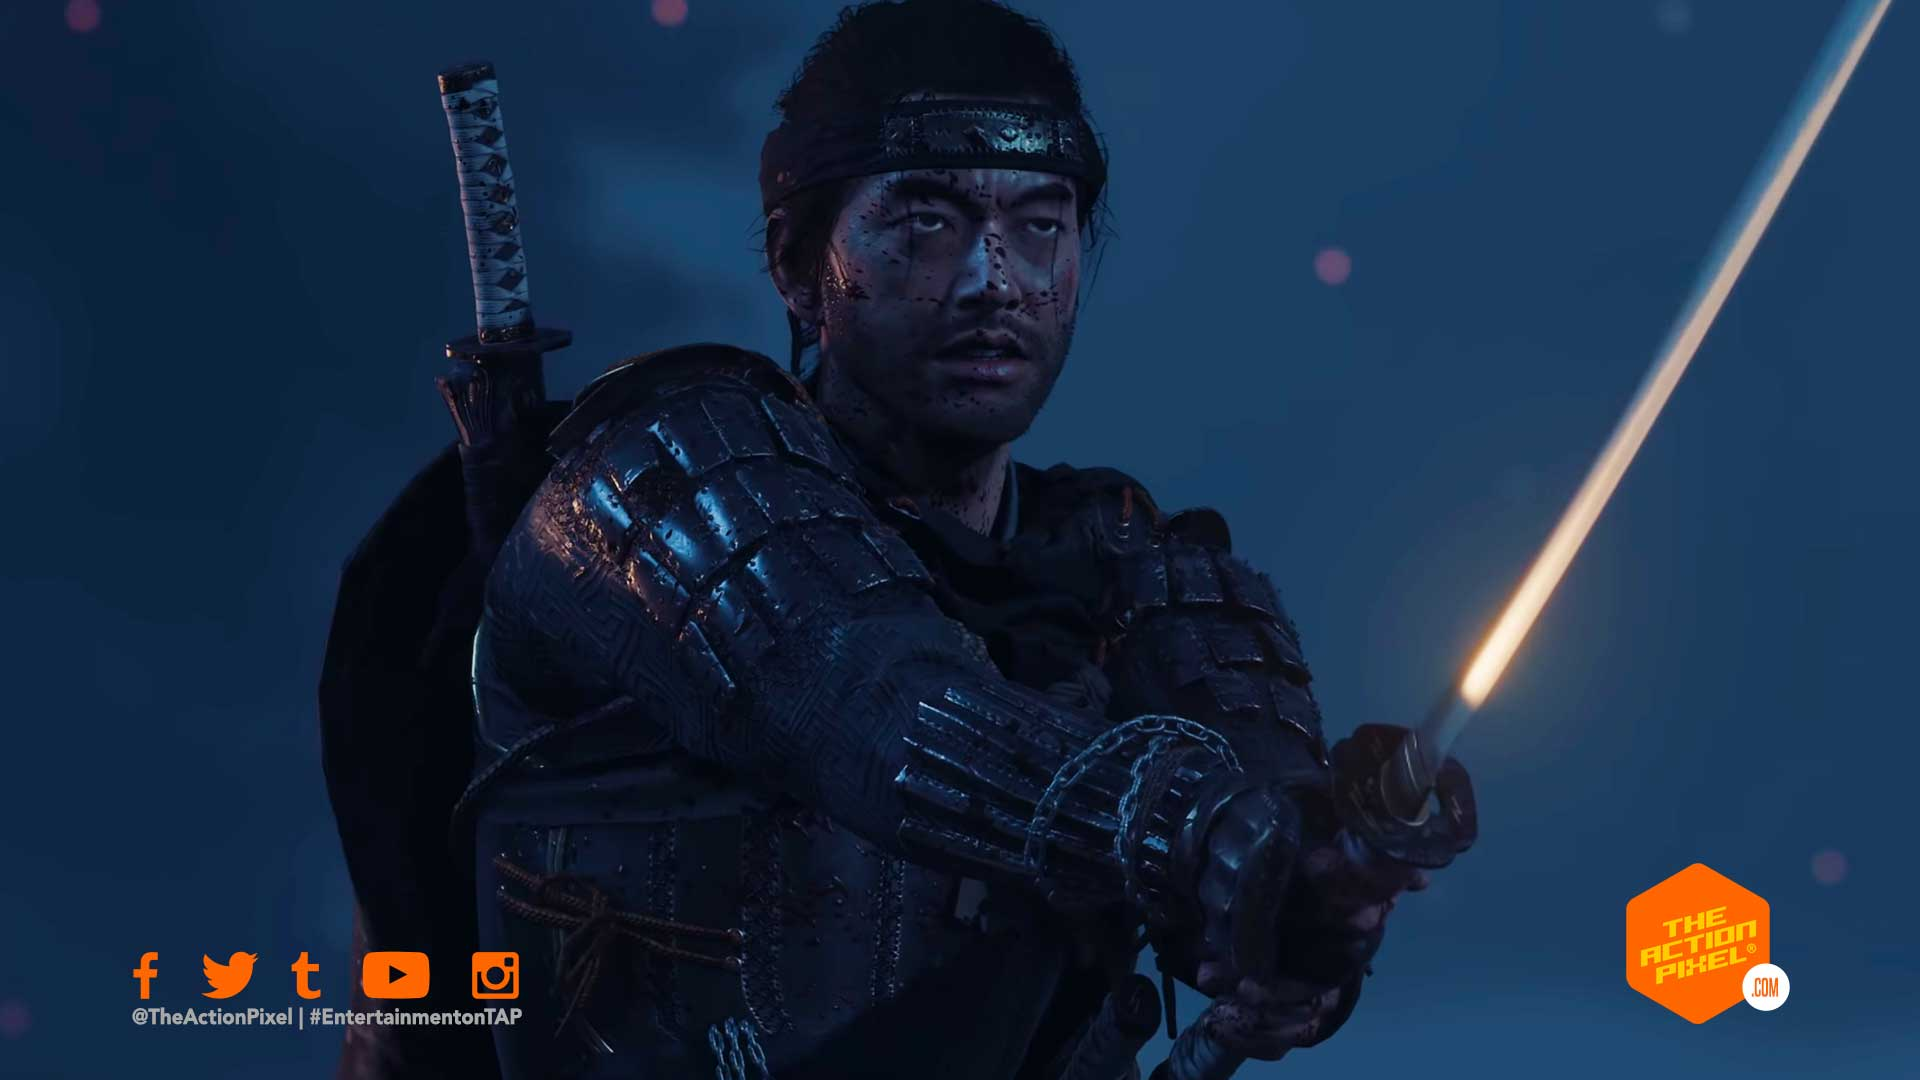 ghost of tsushima,story trailer, ghost of tsushima story trailer, ghost of tsushima release date, sucker punch, sucker punch ghost of tsushima, samurai, featured, ghost of tsushima trailer, entertainment on tap, the action pixel,